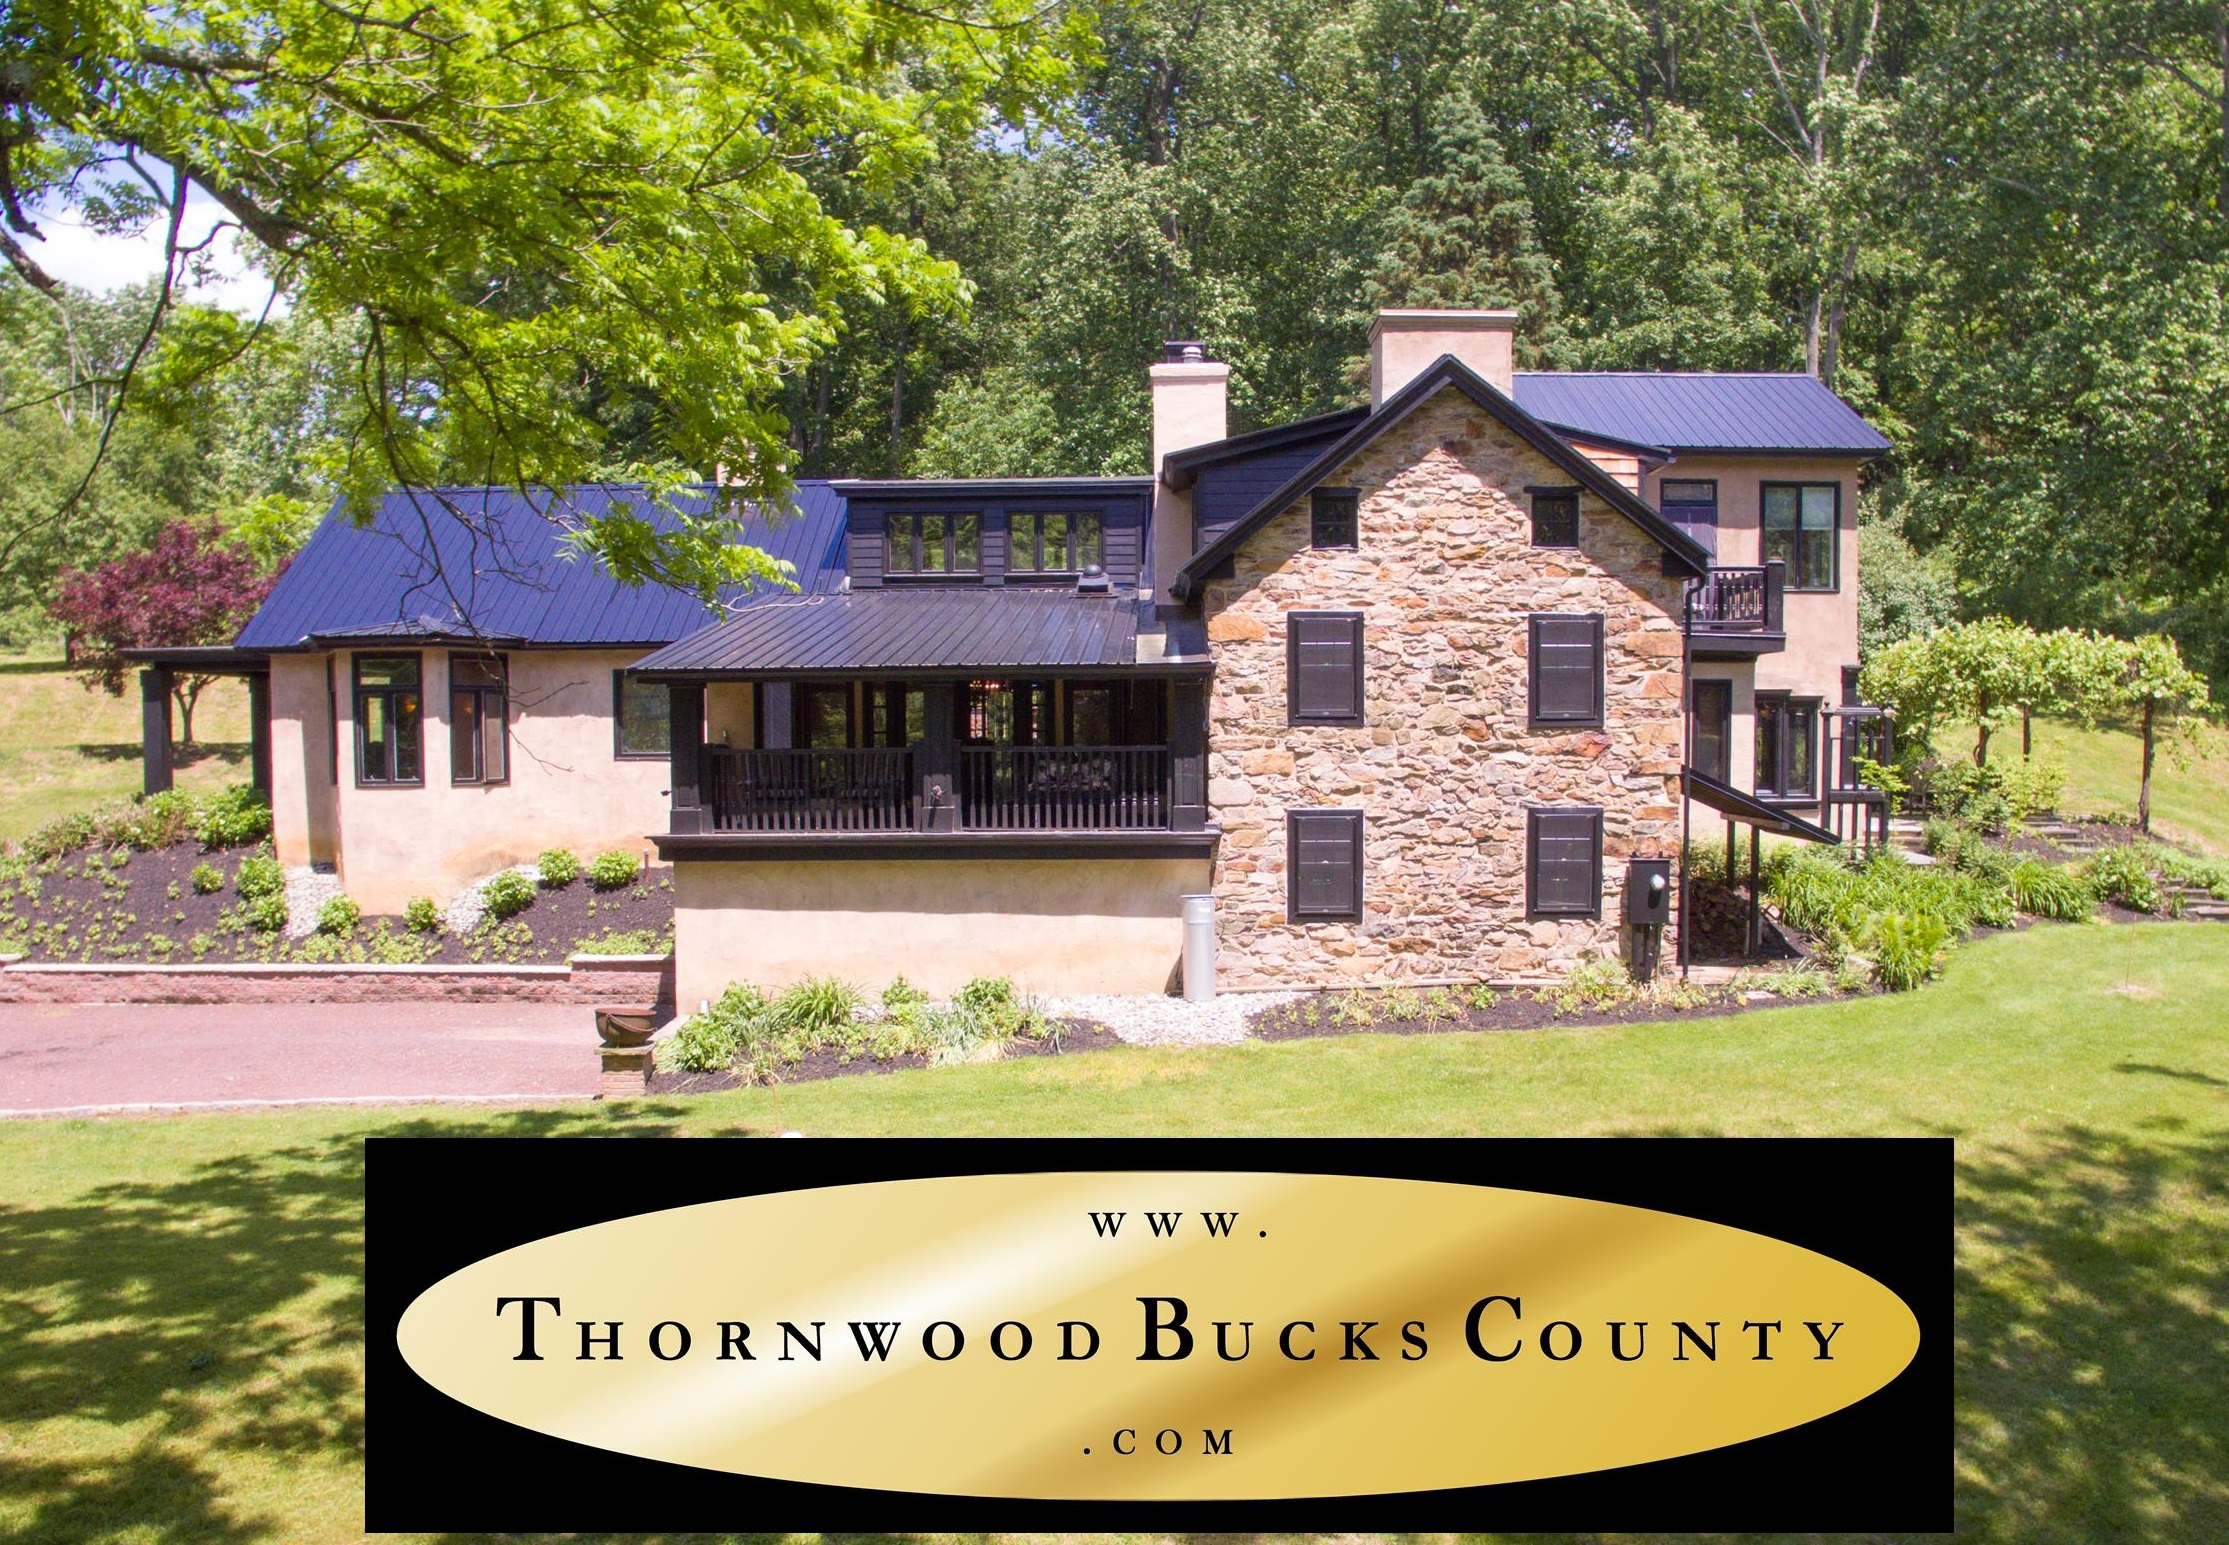 Thornwood Bucks County | #ThornwoodBucksCounty | #ThornwoodBucksCountyHome